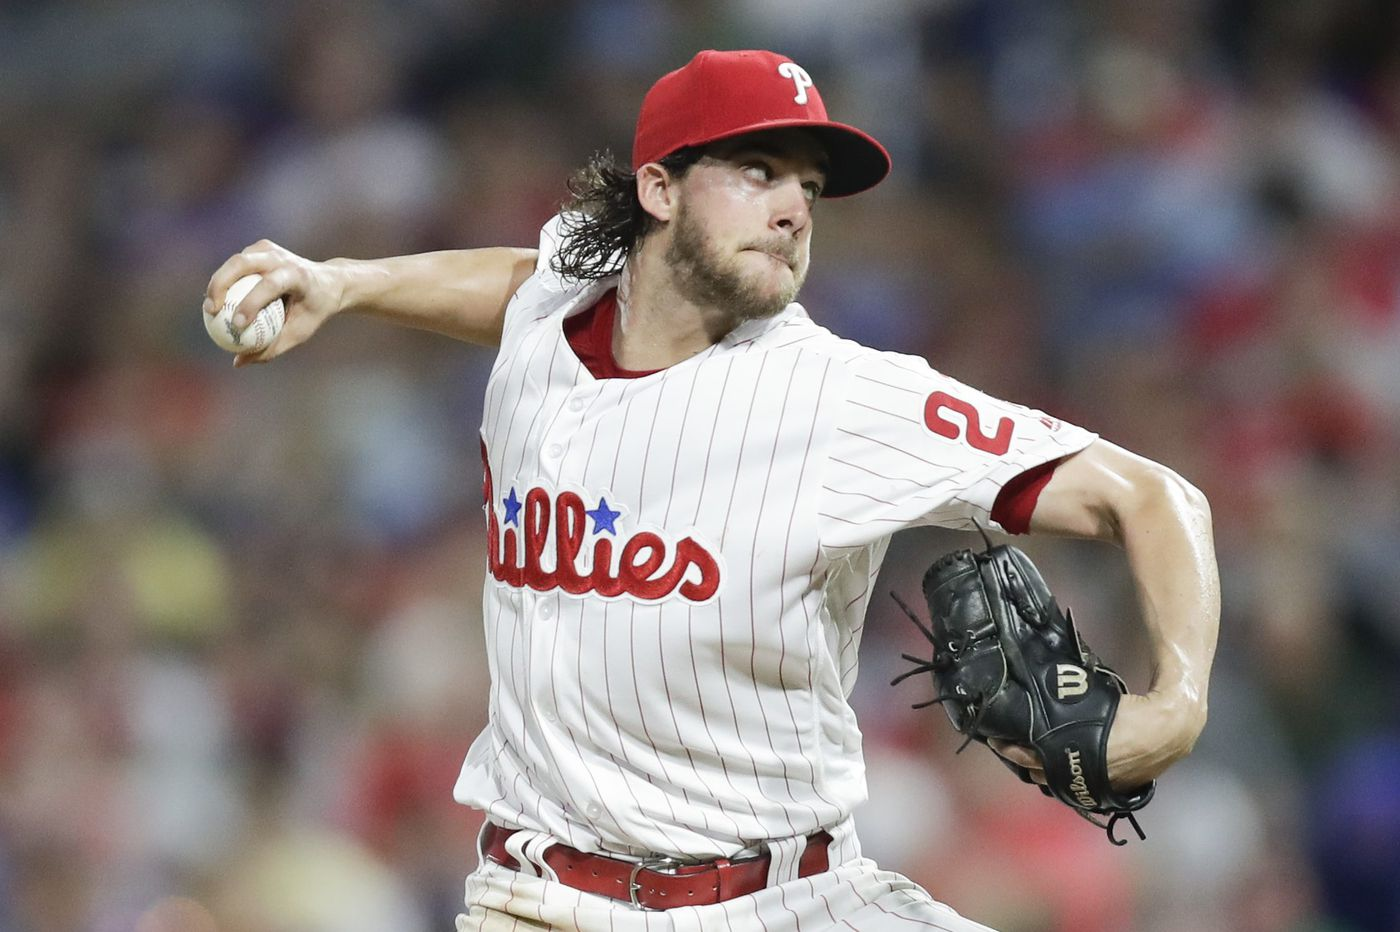 Phillies gambled that they have enough pitching by not adding a starter at the trade deadline